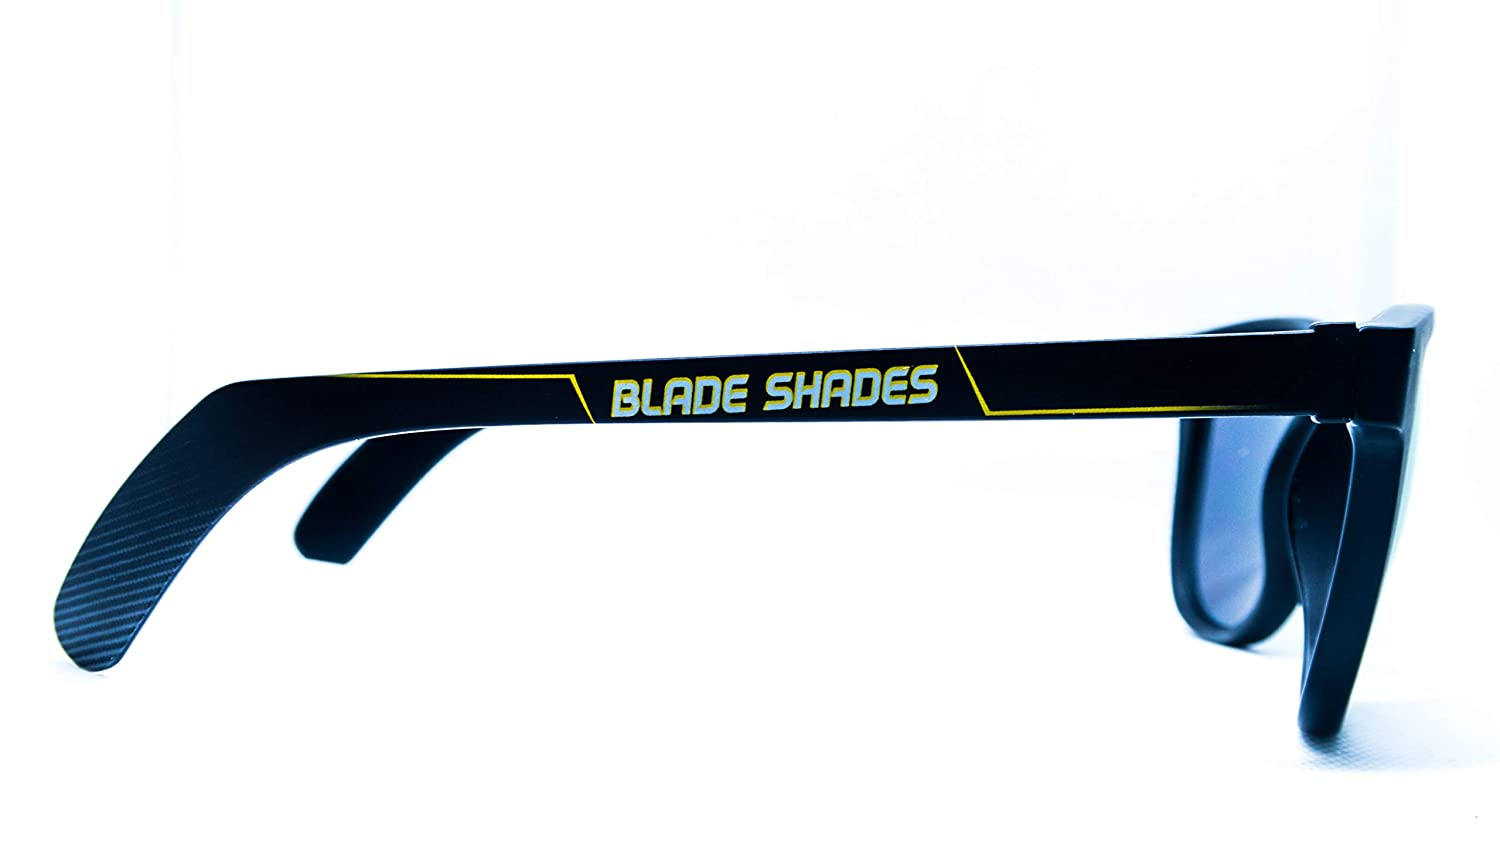 Blade Shades Sports Sunglasses, Original Hockey Stick 100 UV Protection Sunglasses for Men, Women, Kids